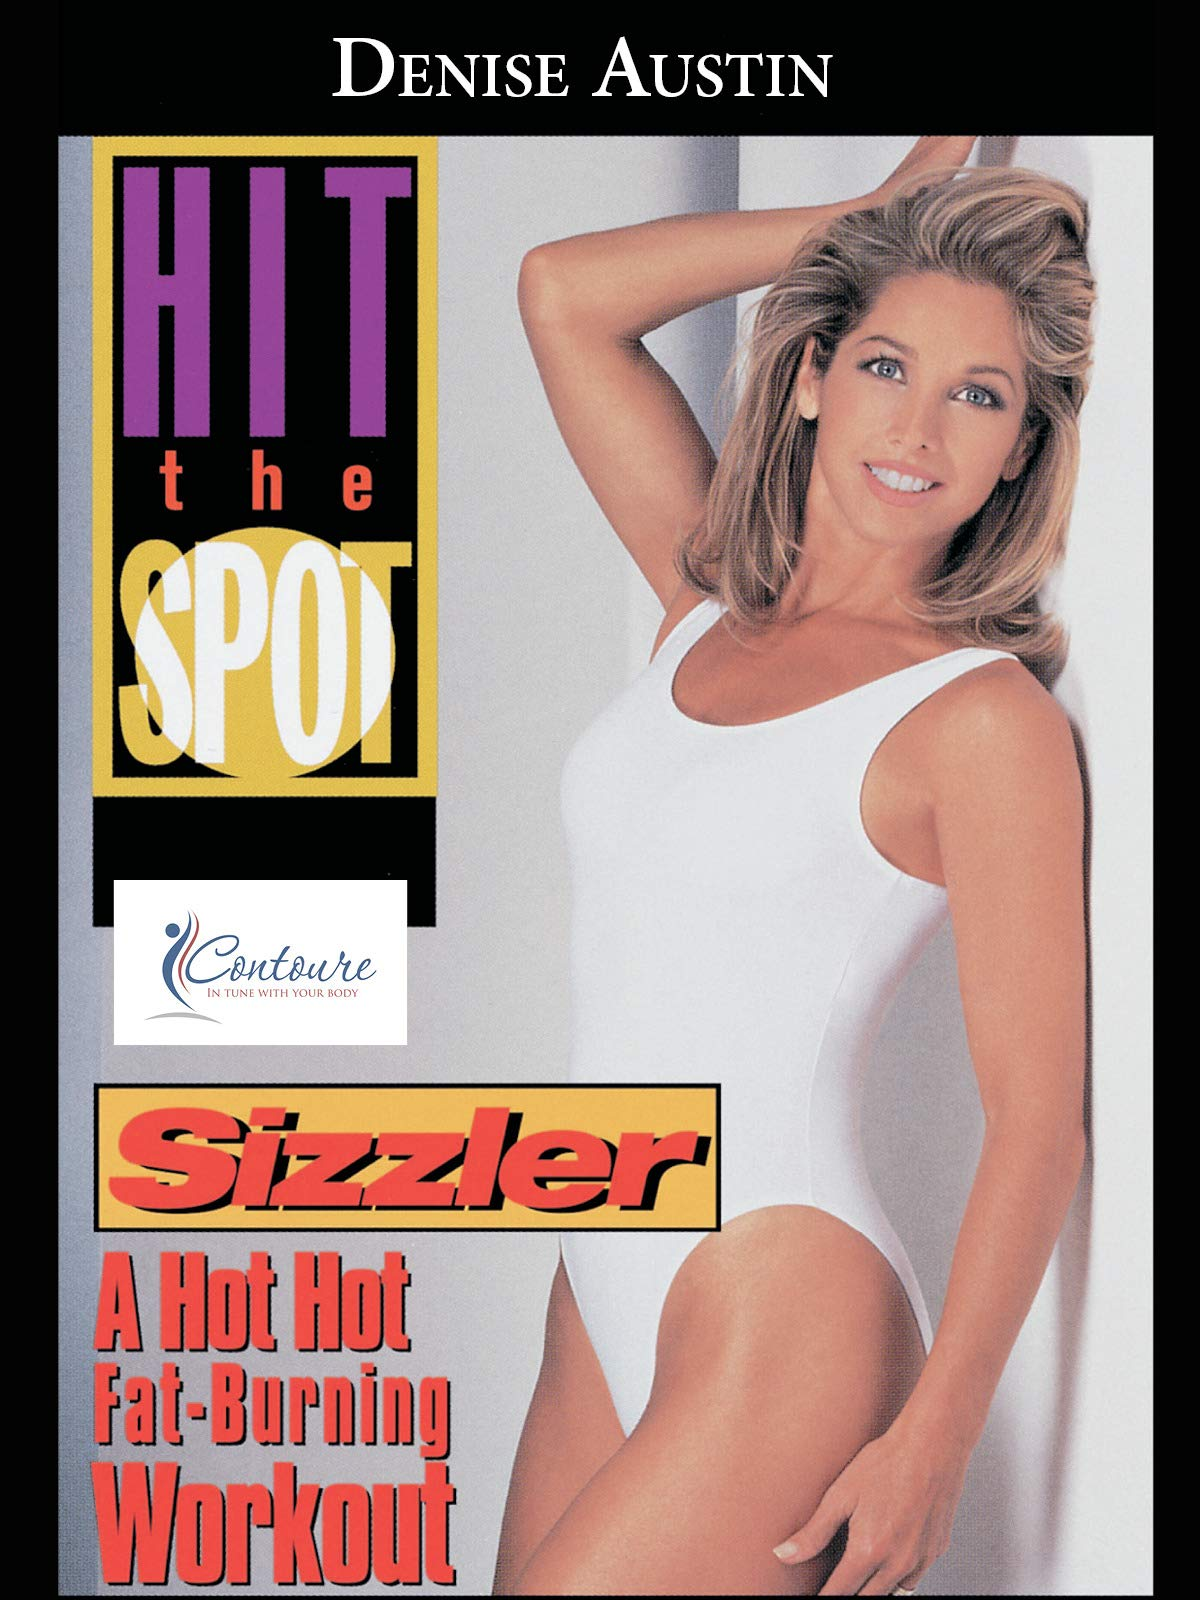 Think, that denise austin hot your